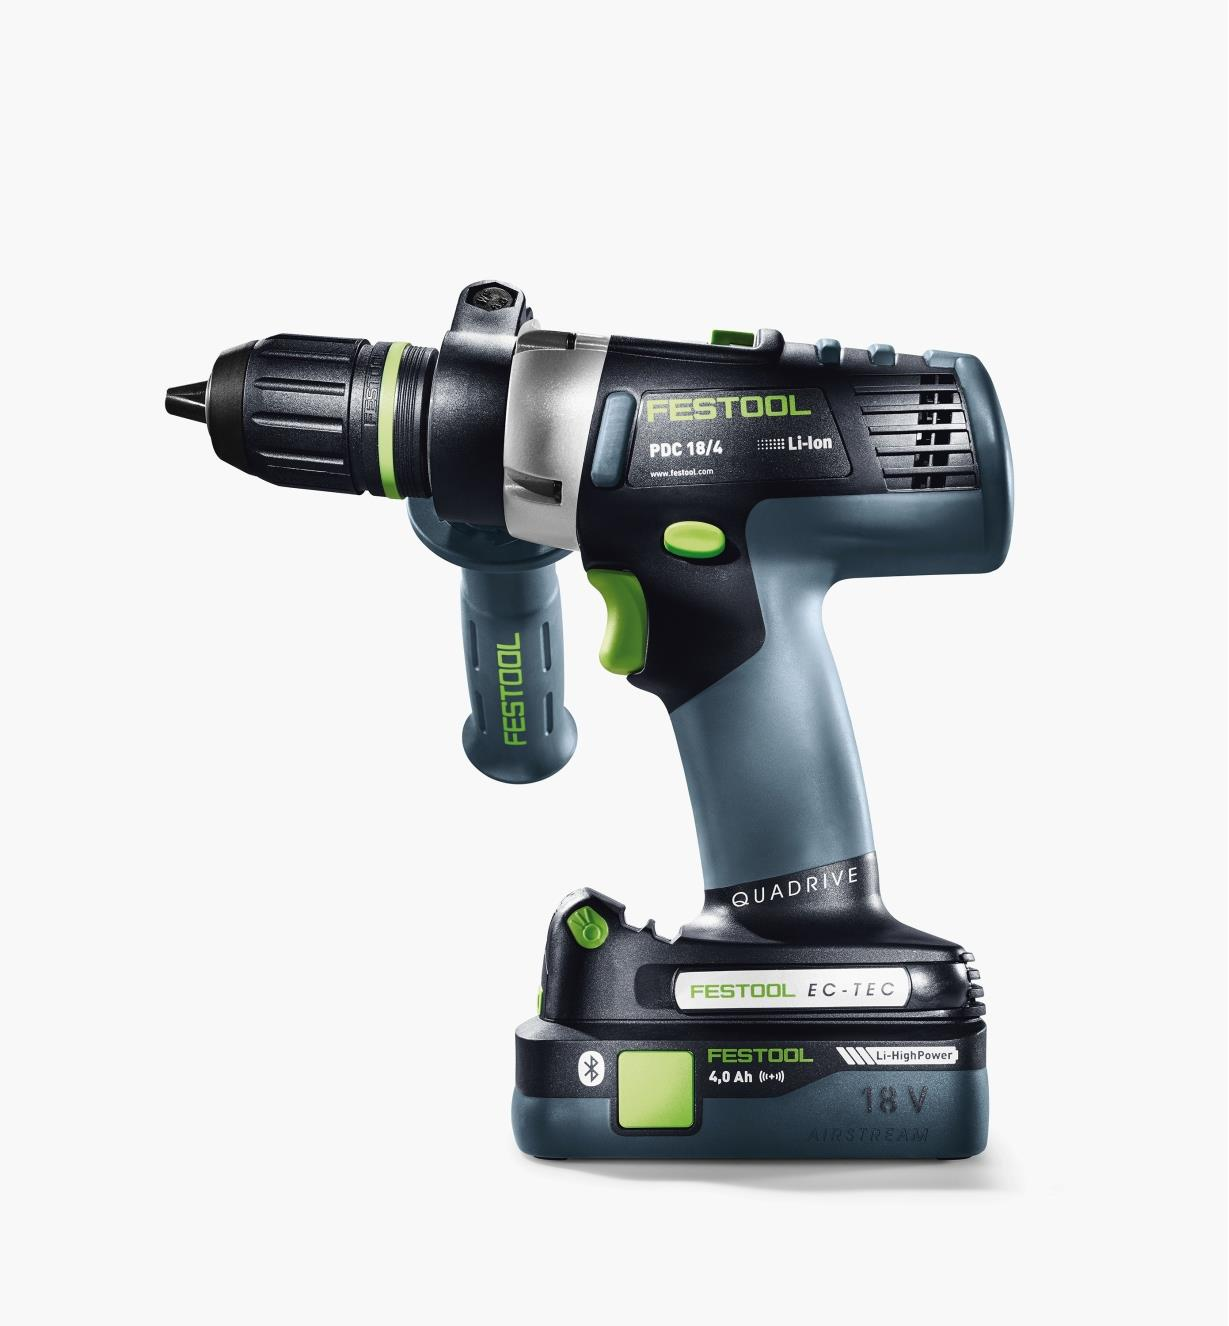 Festool PDC 18 Cordless Hammer Drill Basic (battery shown not included)